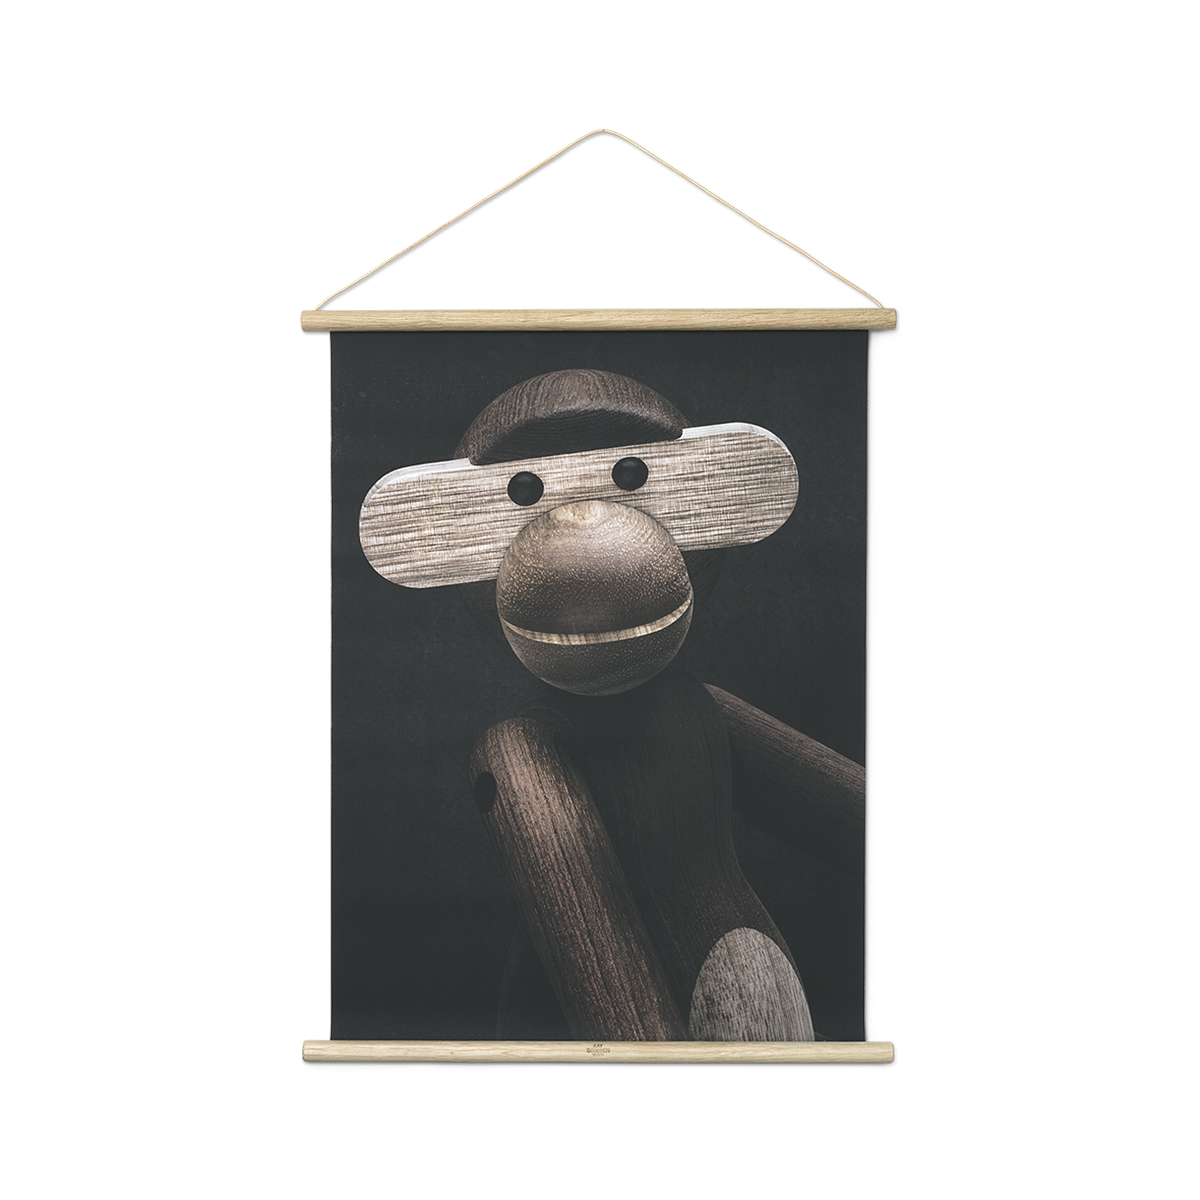 monkey picture portrait kay bojesen s monkey 40 x 56 photo of a danish art icon. Black Bedroom Furniture Sets. Home Design Ideas